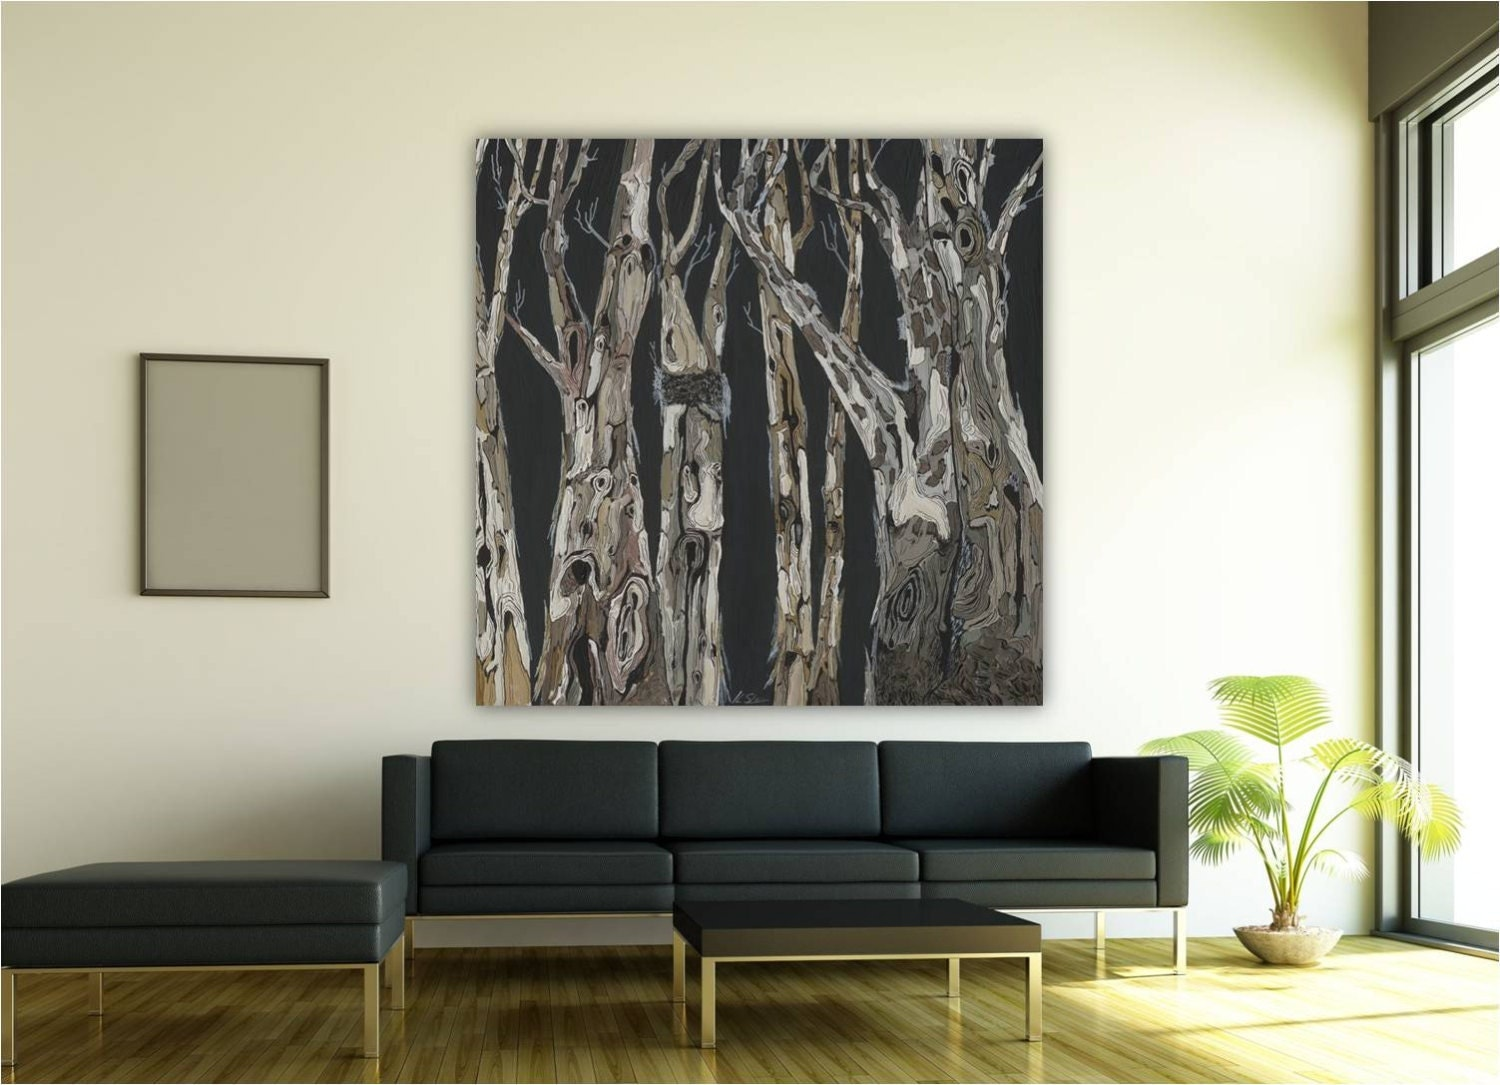 Wall art extra large modern artwork dining room tree art black for Large wall decor for dining room